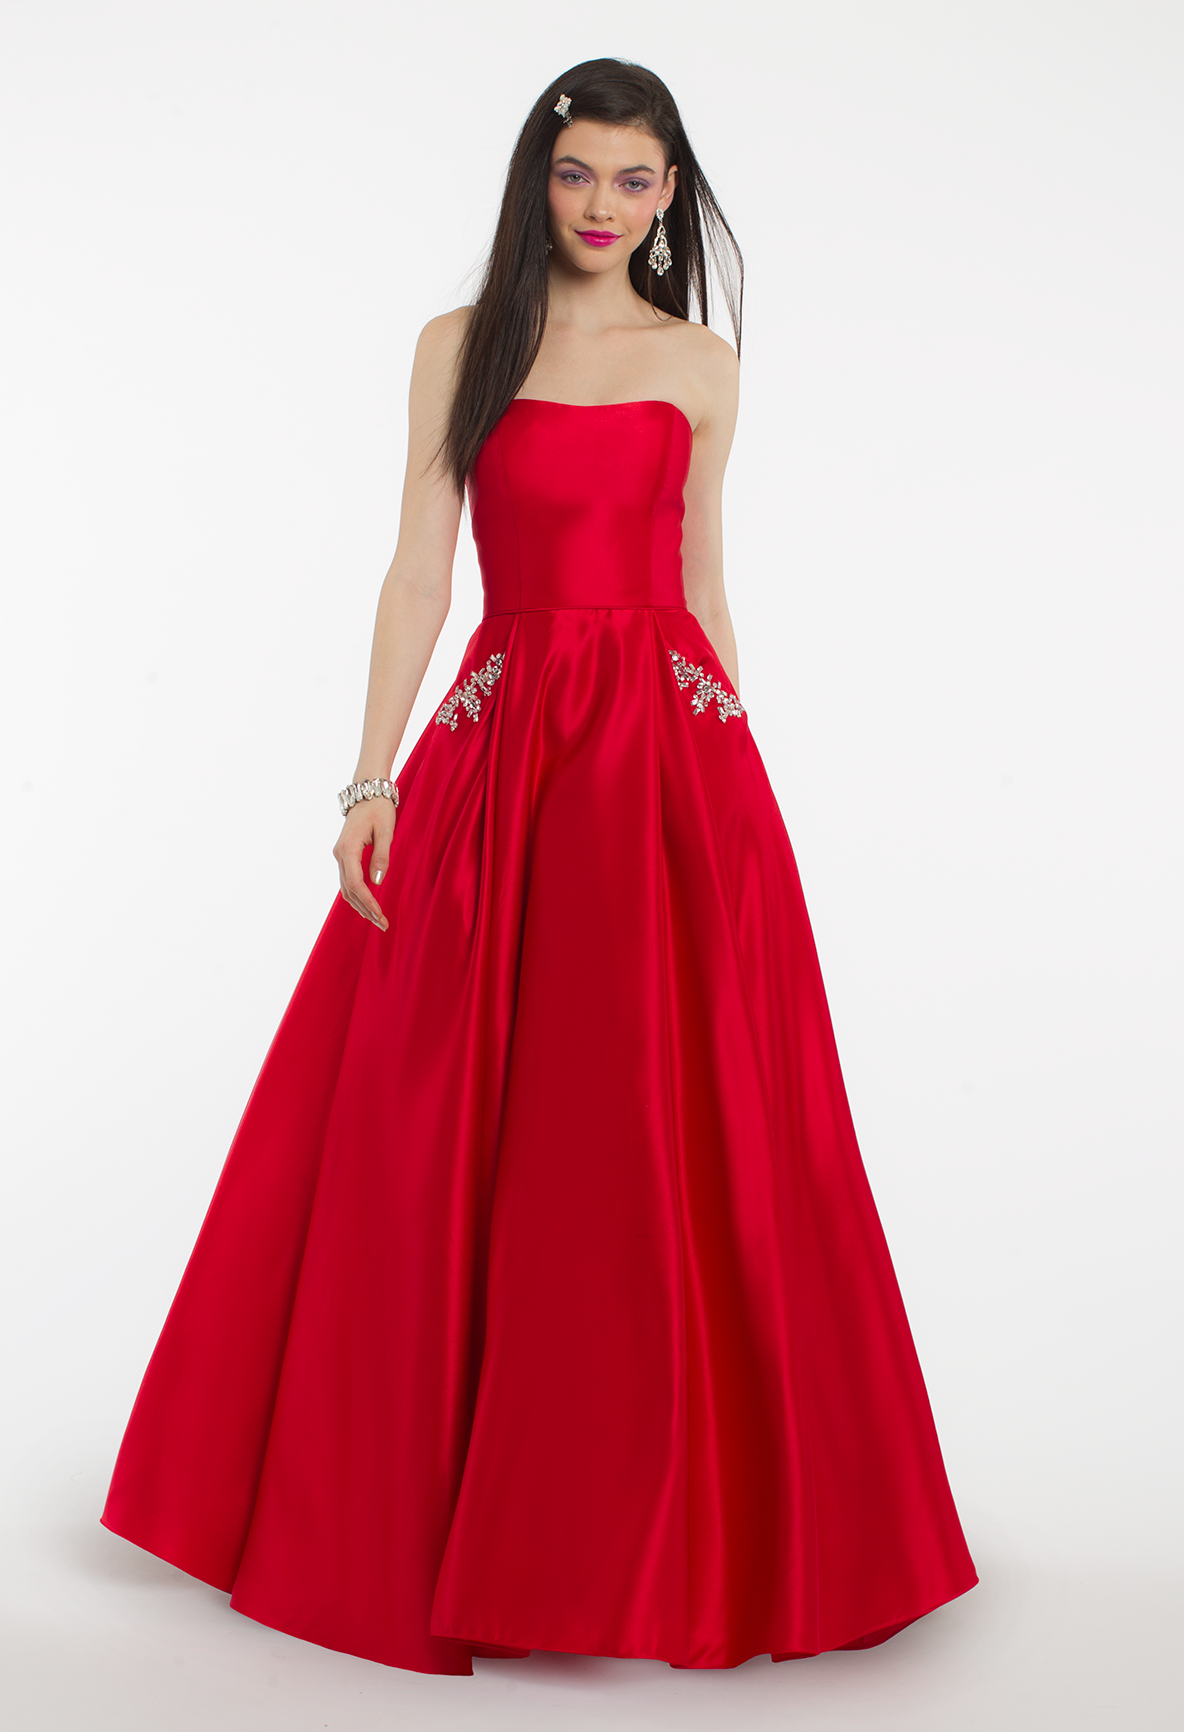 This ball gown dress is both sassy and sweet with its strapless